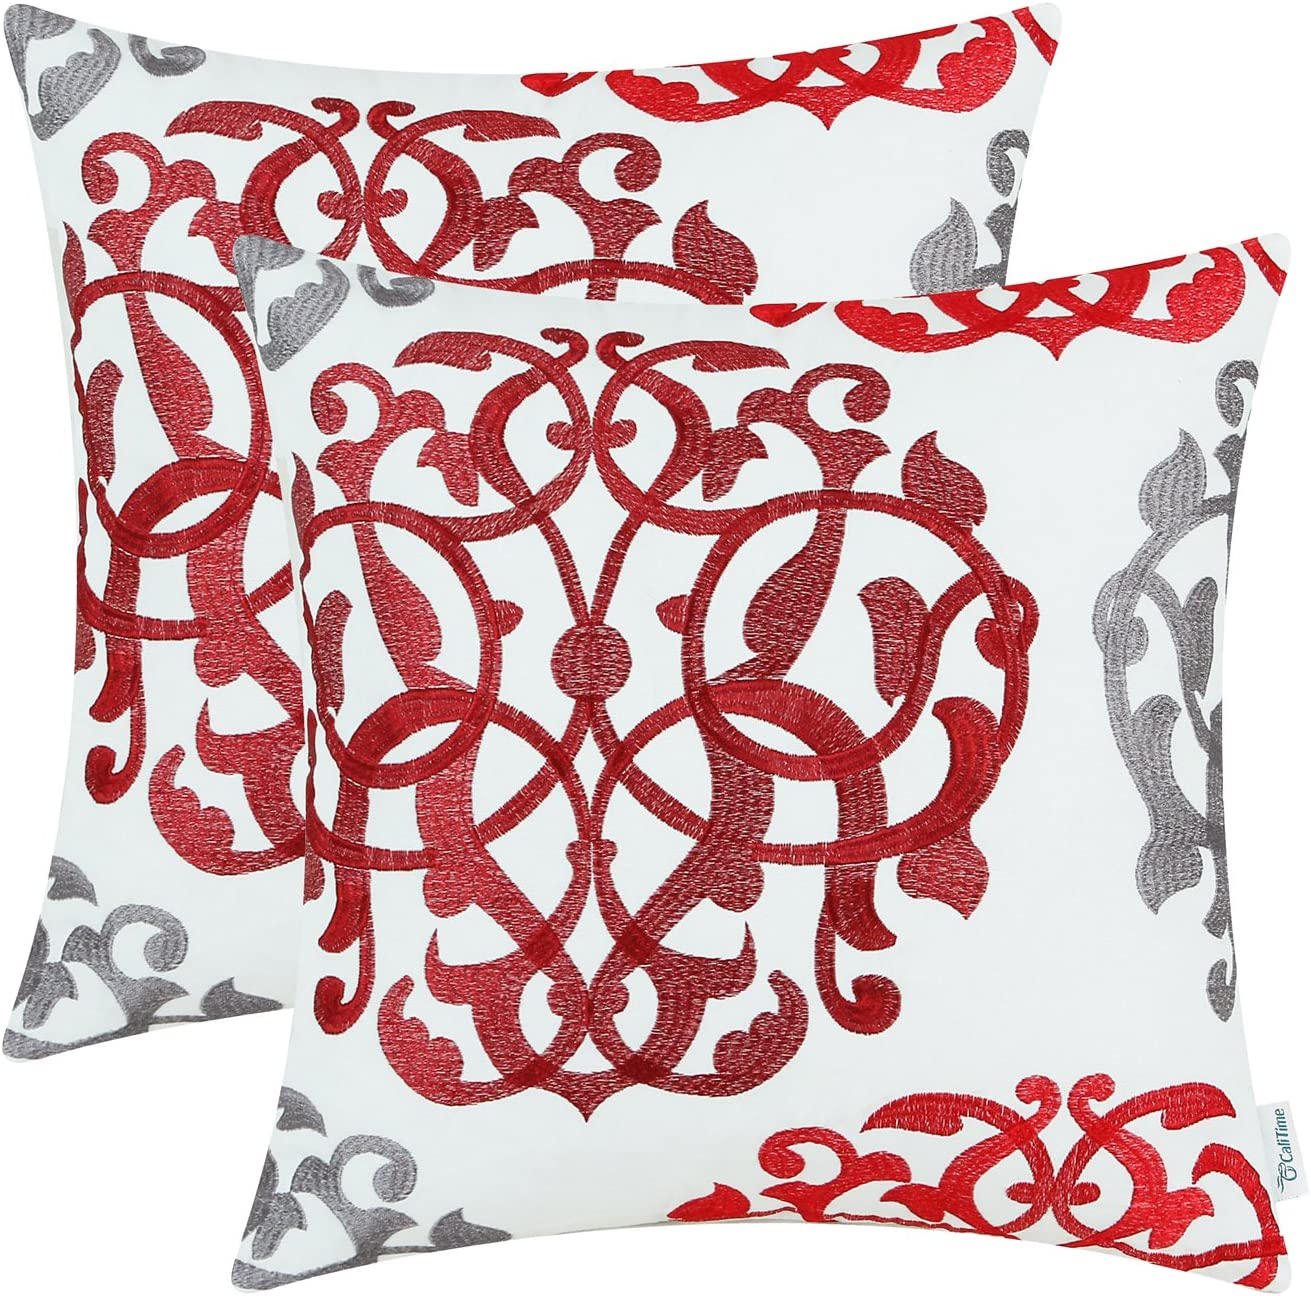 CaliTime Pack of 2 Cotton Throw Pillow Cases Covers for Bed Couch Sofa Vintage Compass Geometric Floral Embroidered 20 X 20 Inches Red Gray